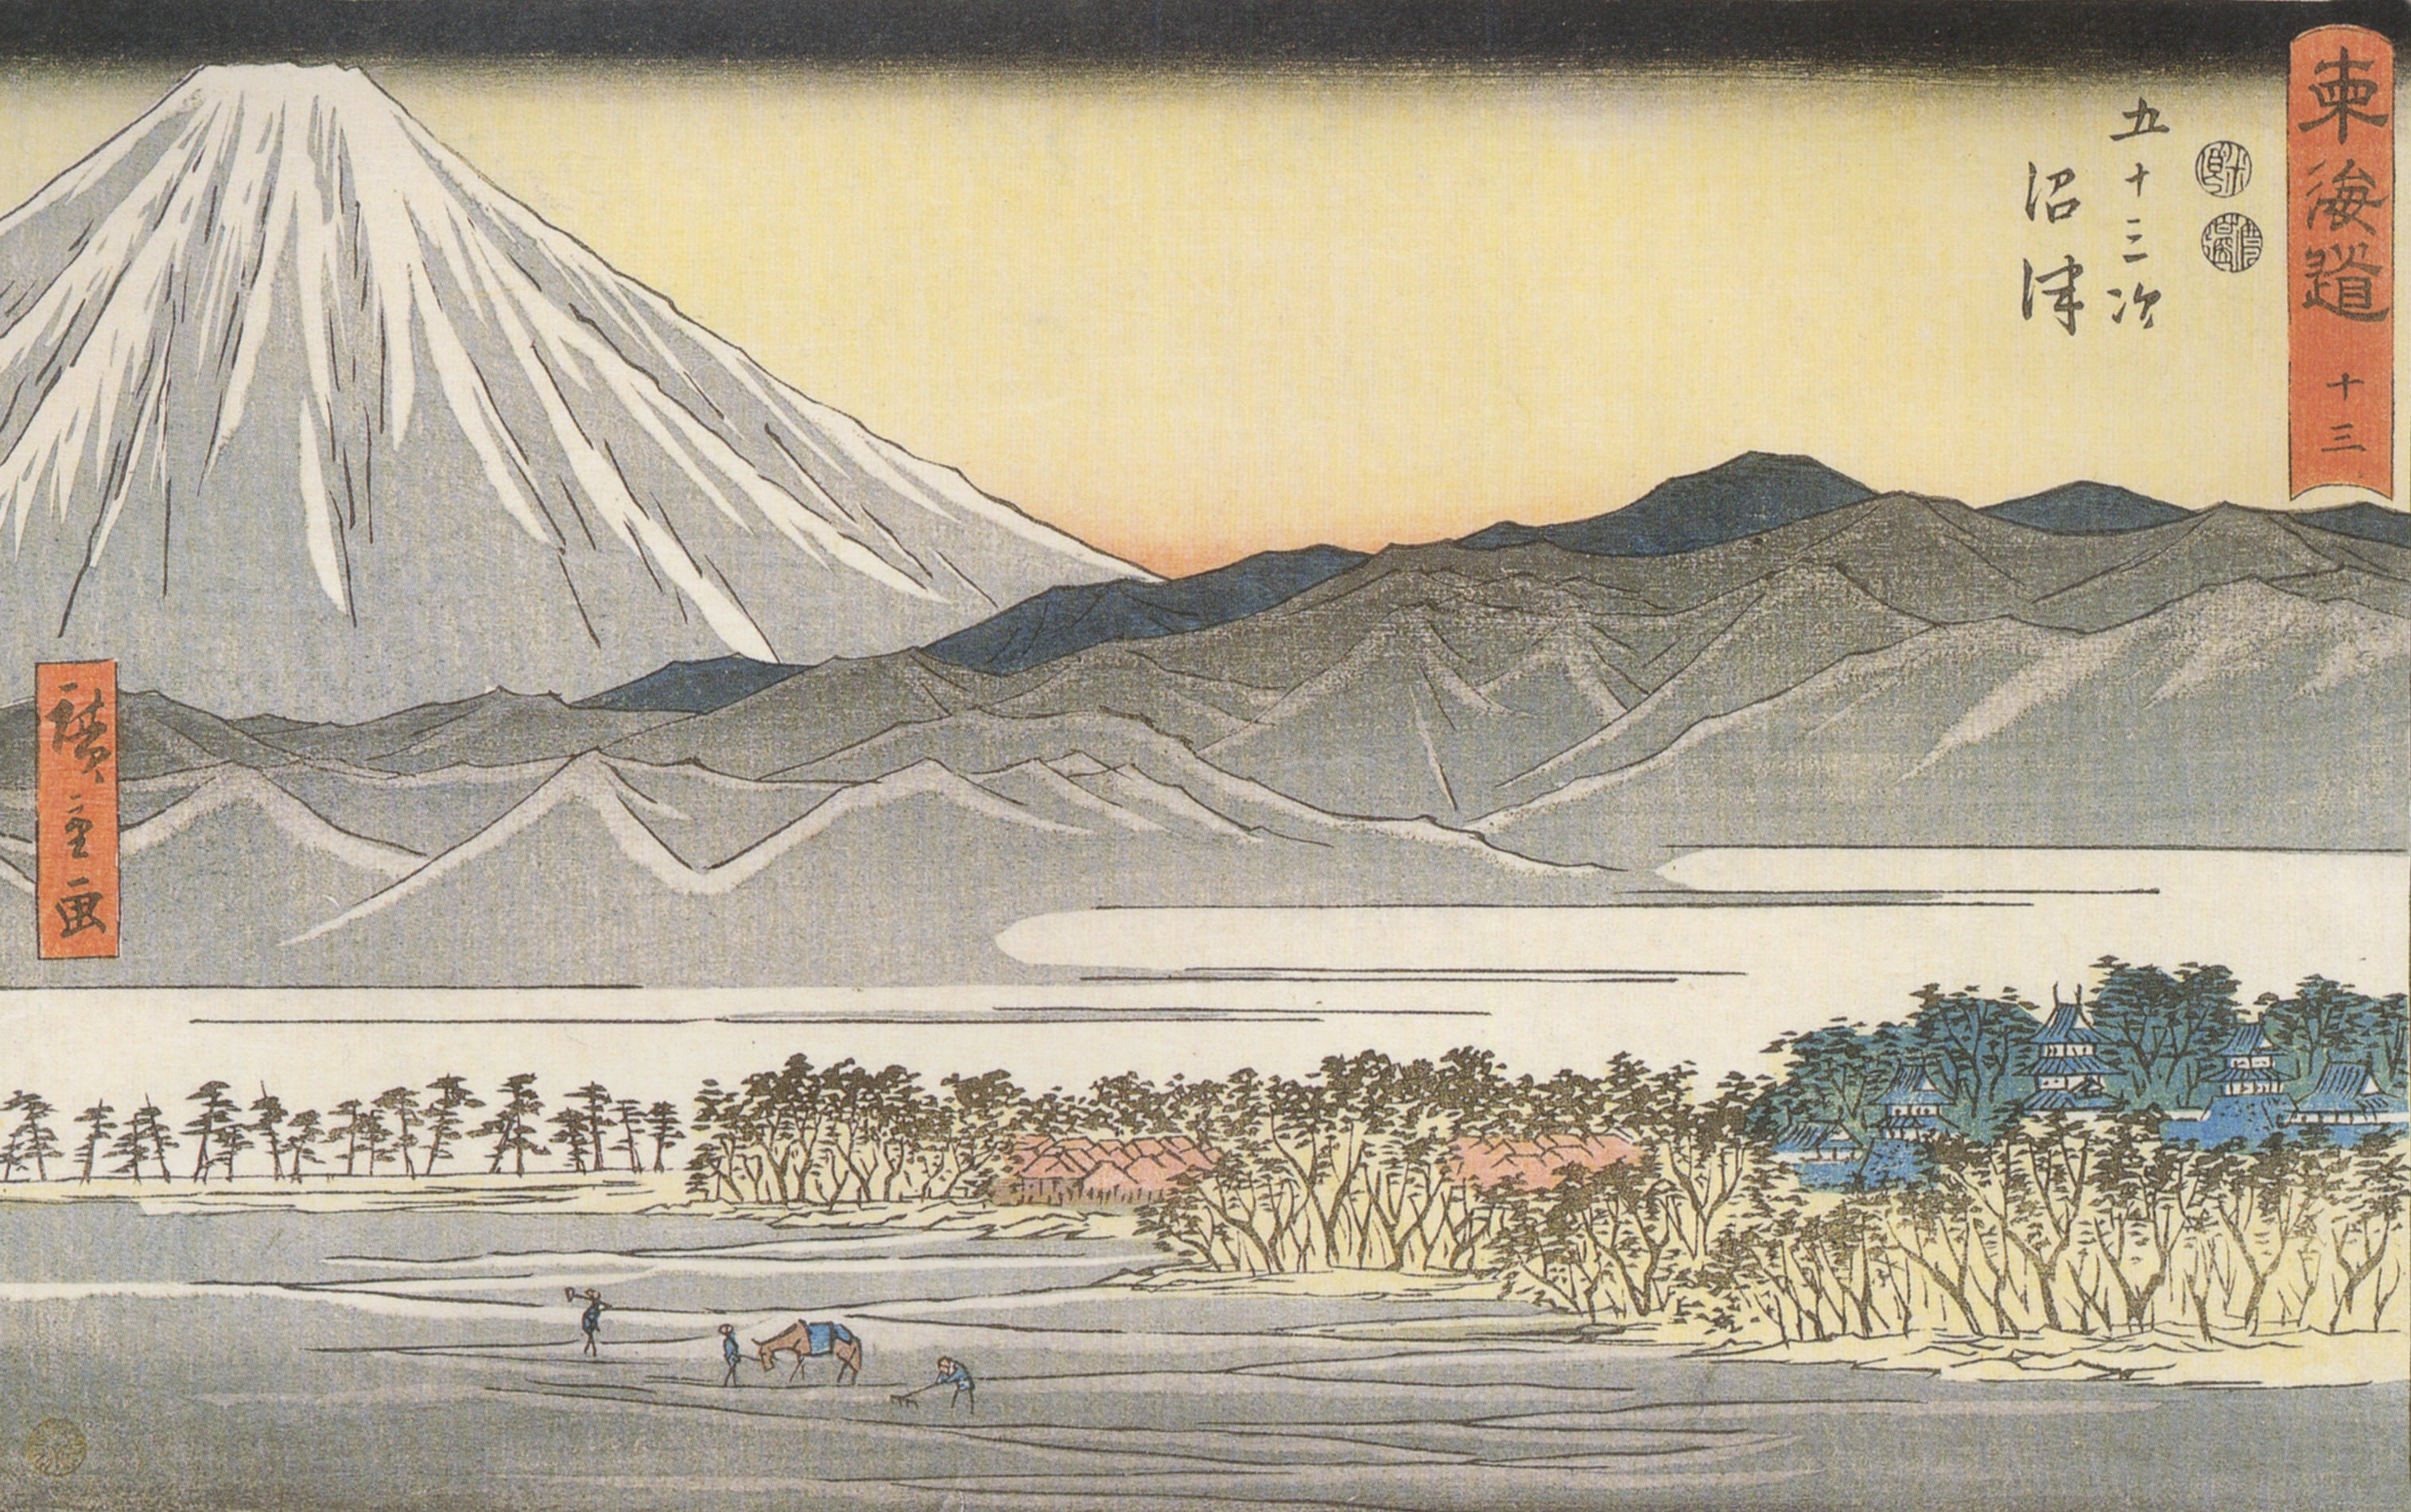 http://upload.wikimedia.org/wikipedia/commons/d/d4/Hiroshige_Mt_Fuji_seen_across_a_plain.jpg